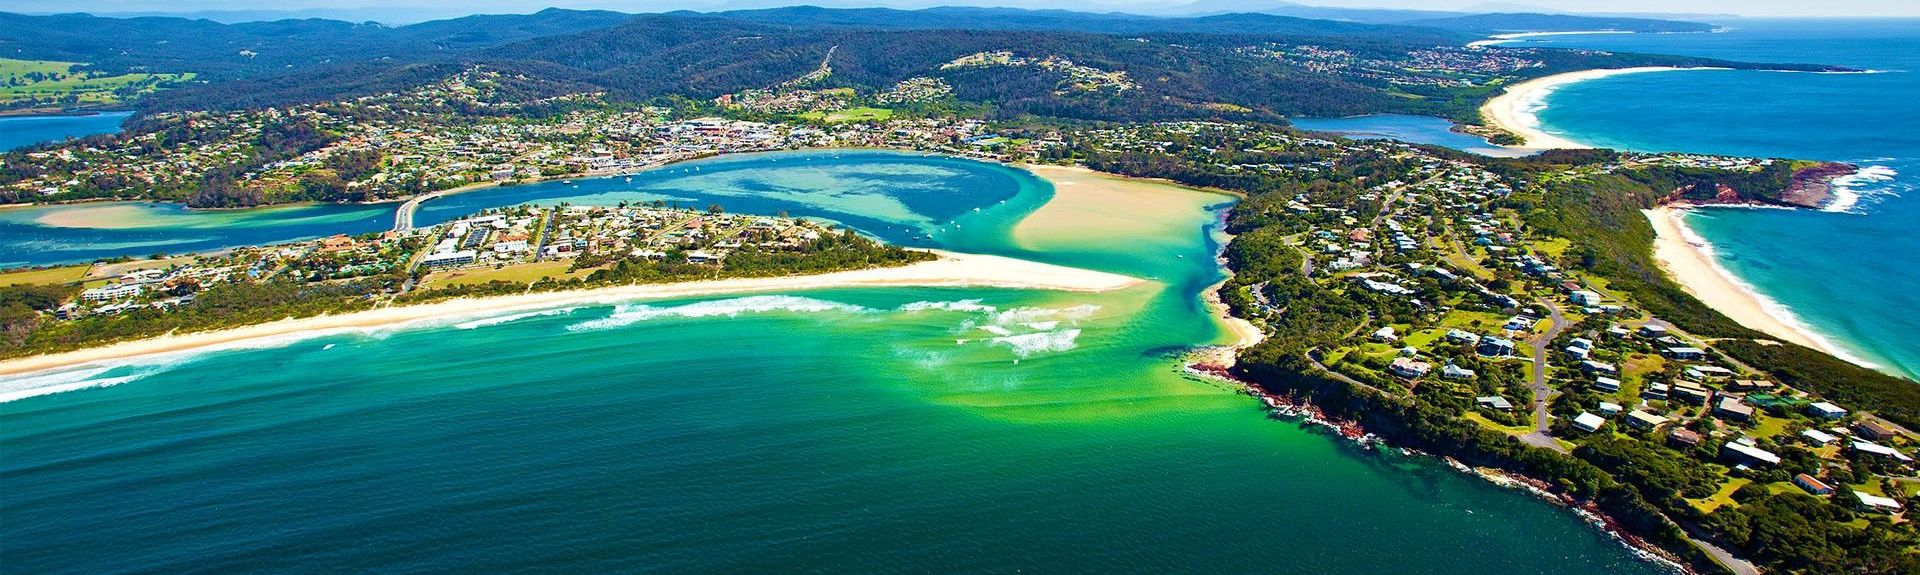 Tura Beach Country Club, Tura Beach, New South Wales, Australia